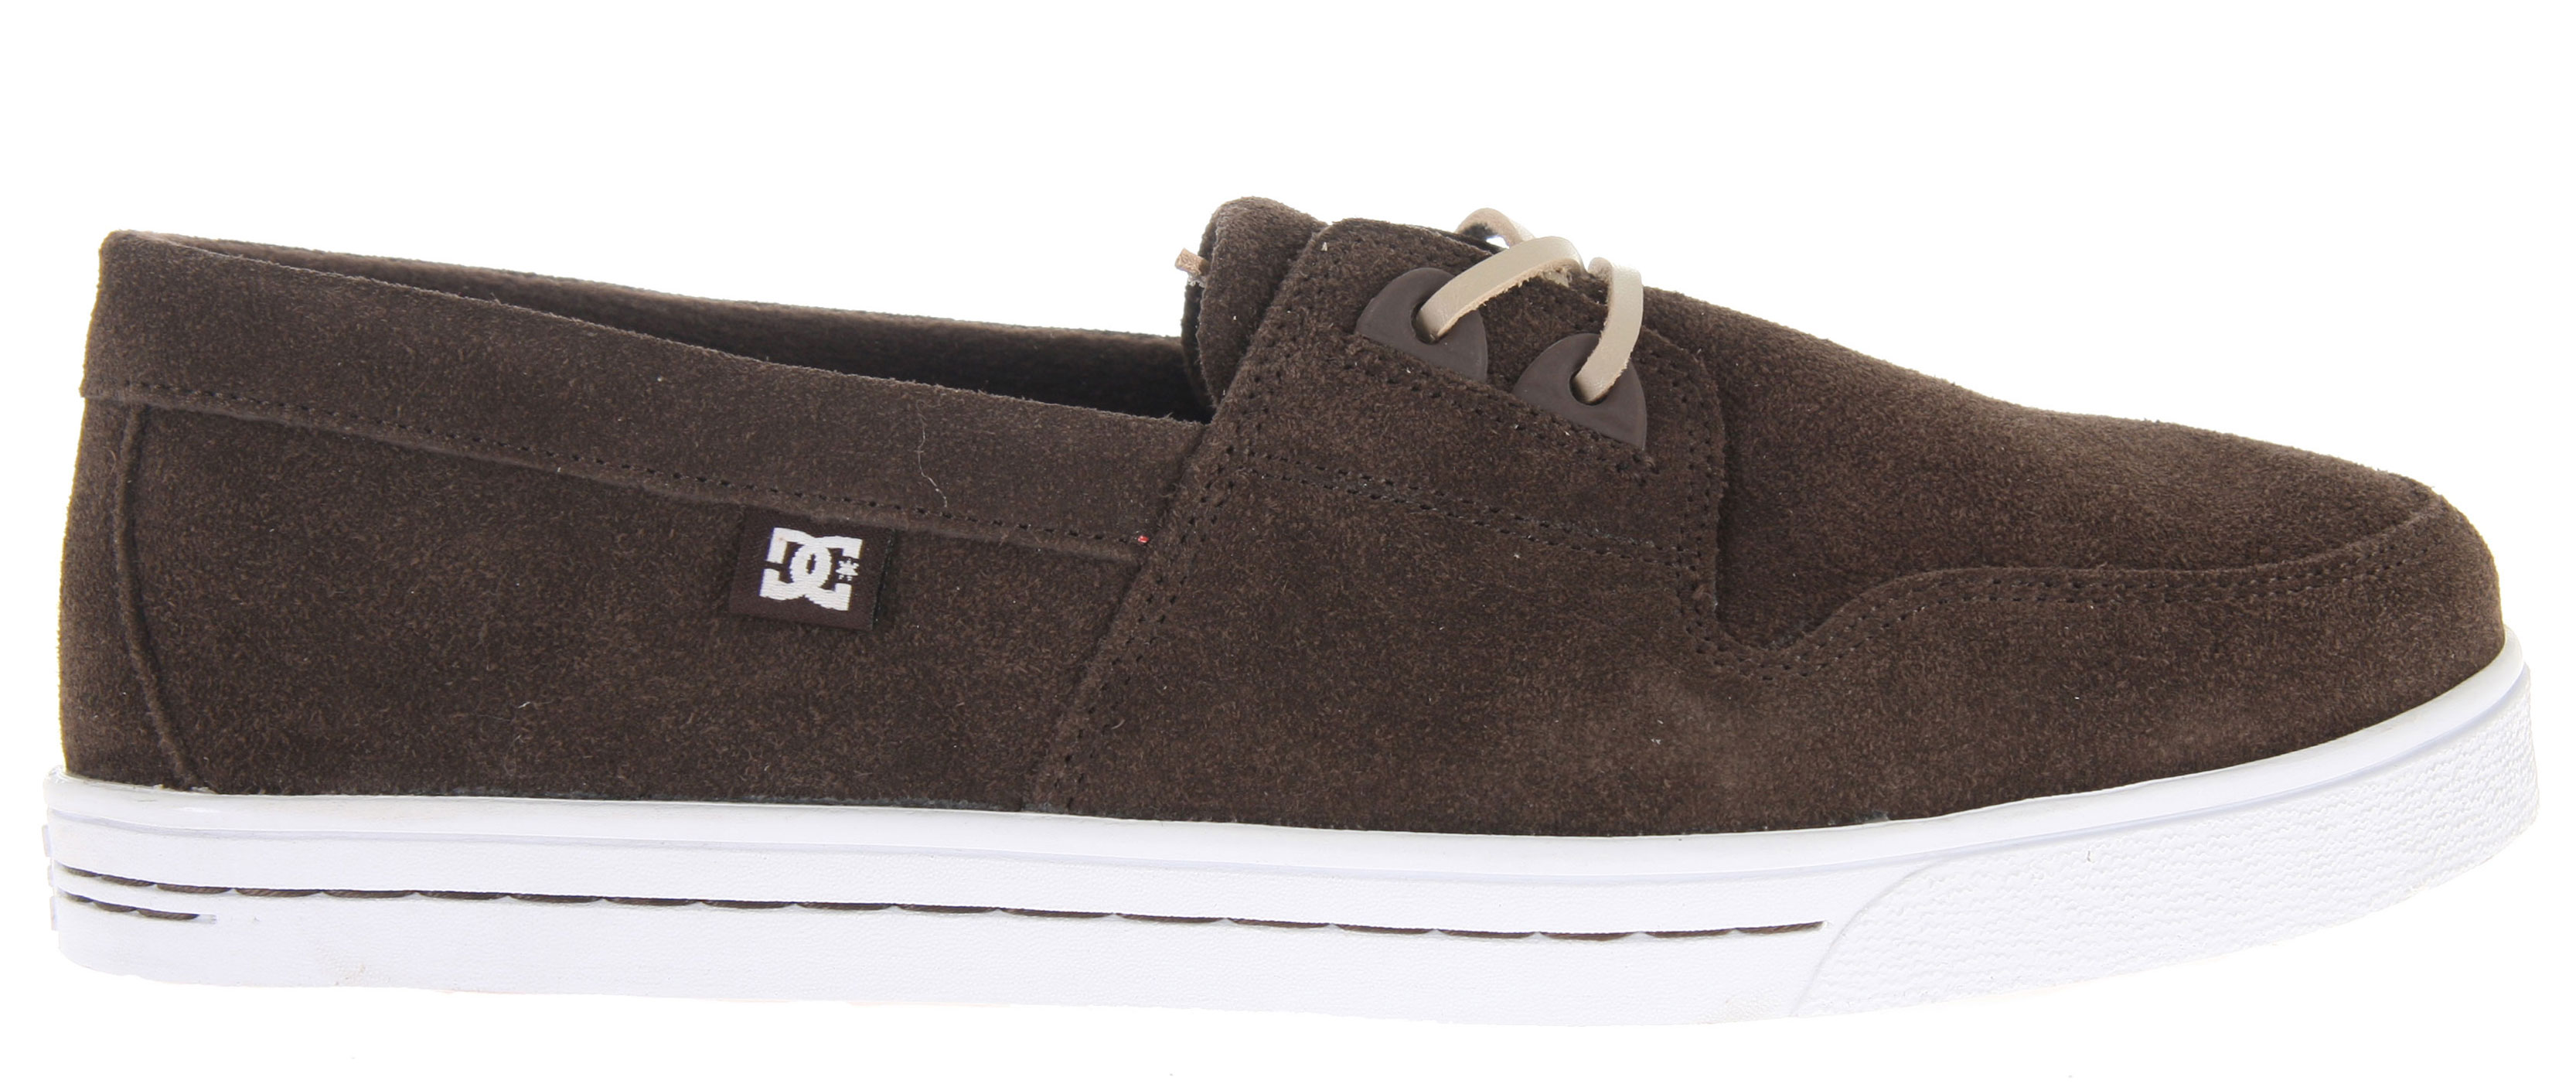 "Skateboard Key Features of the DC Club Skate Shoes: Soft Resilient Action Leather TPU Eyelets DC's Performance Cup Sole Abrasion-Resistant Sticky Rubber Outsole with DC's Trademarked ""Pill"" Pattern Leather lace - $35.95"